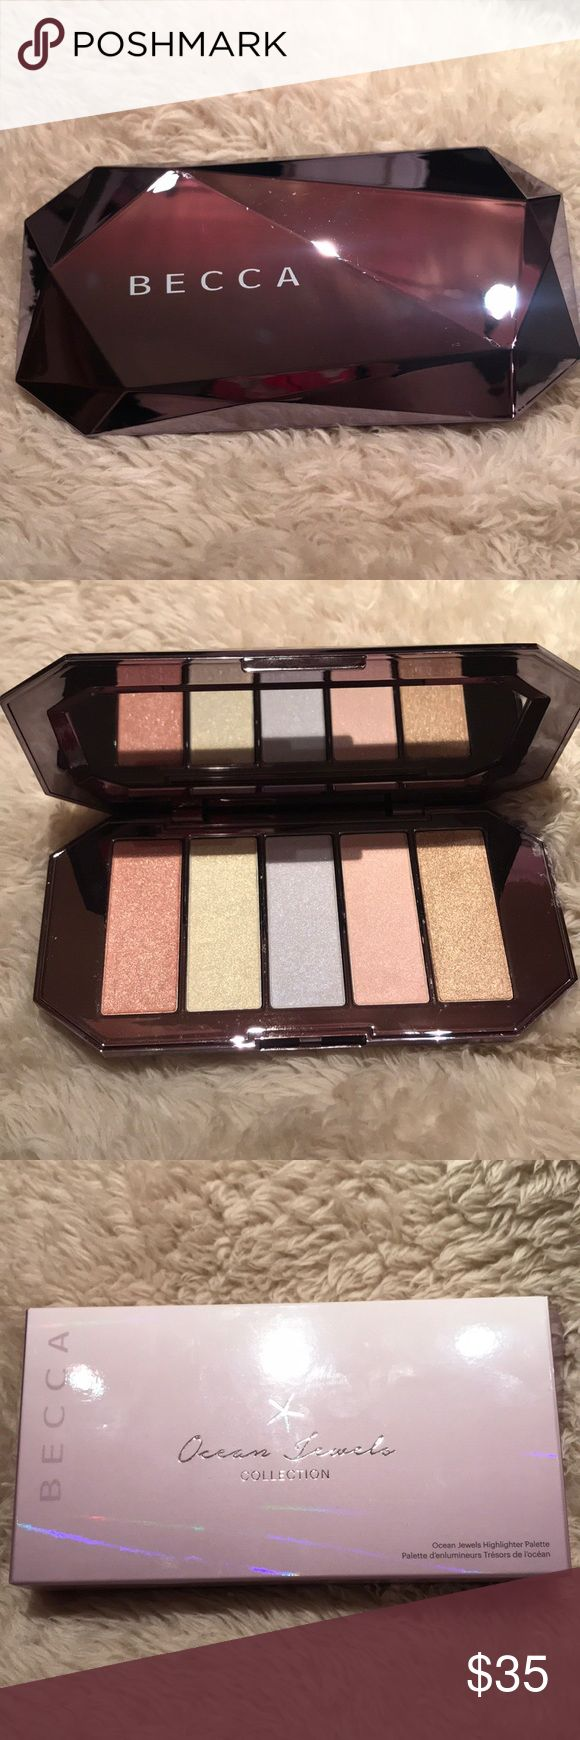 BECCA Ocean Jewels Highlighter Palette A limited-edition, highlighting palette, featuring five brand new shades of BECCA's iconic Shimmering Skin Perfector Pressed Highlighter formula.. BECCA Makeup Luminizer